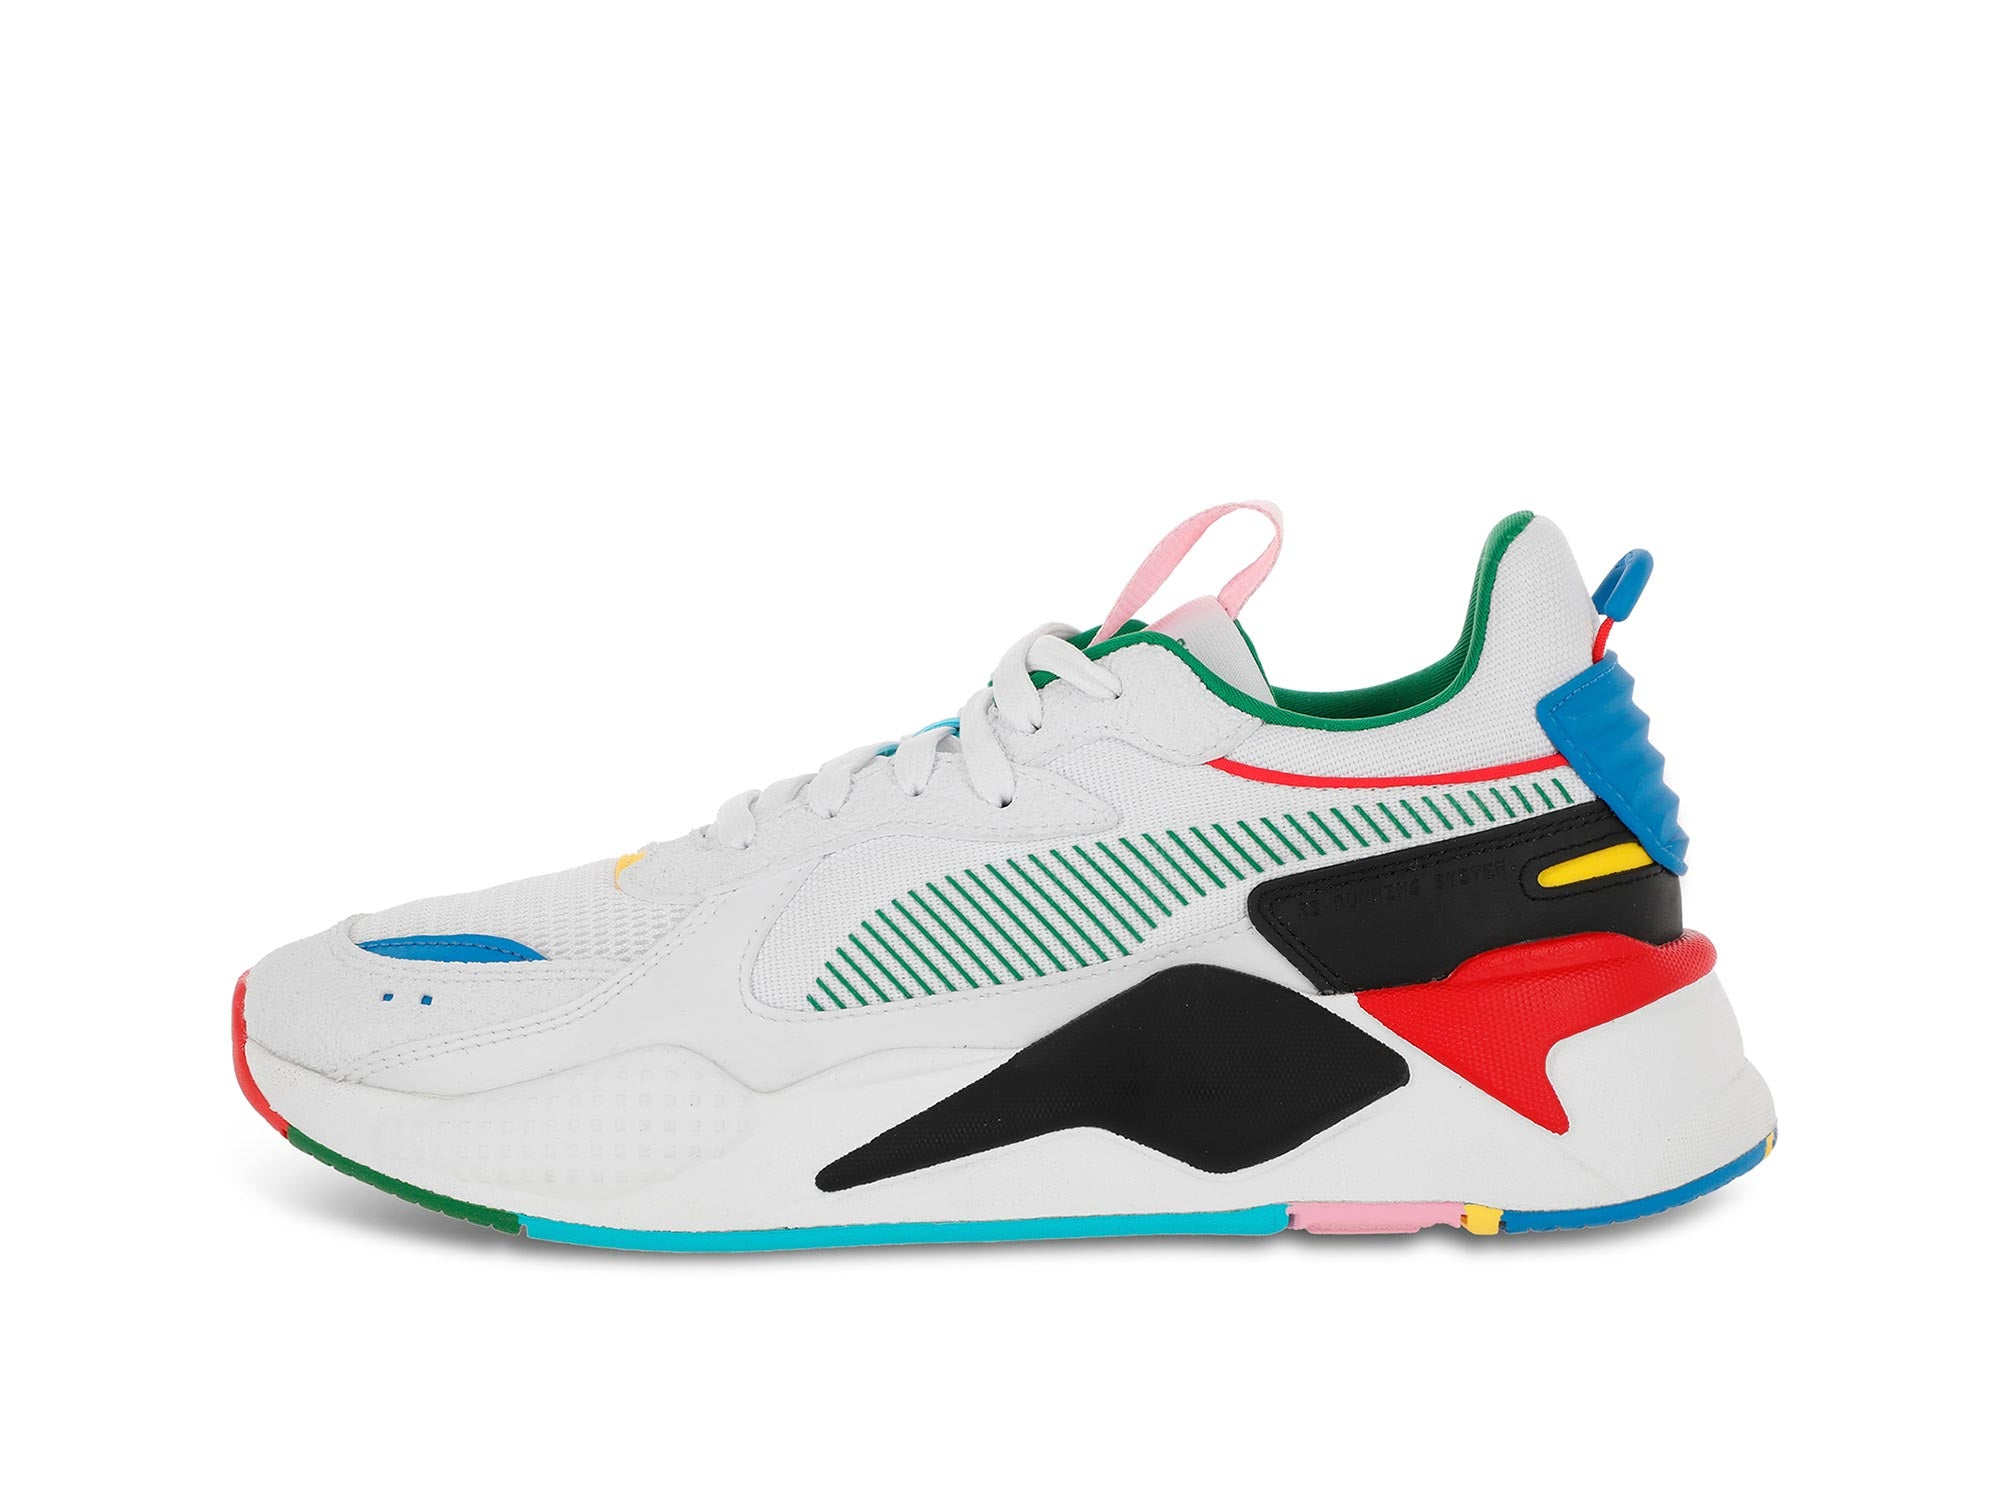 Zapatilla Puma Rs-X Intl Game Unisex Blanco